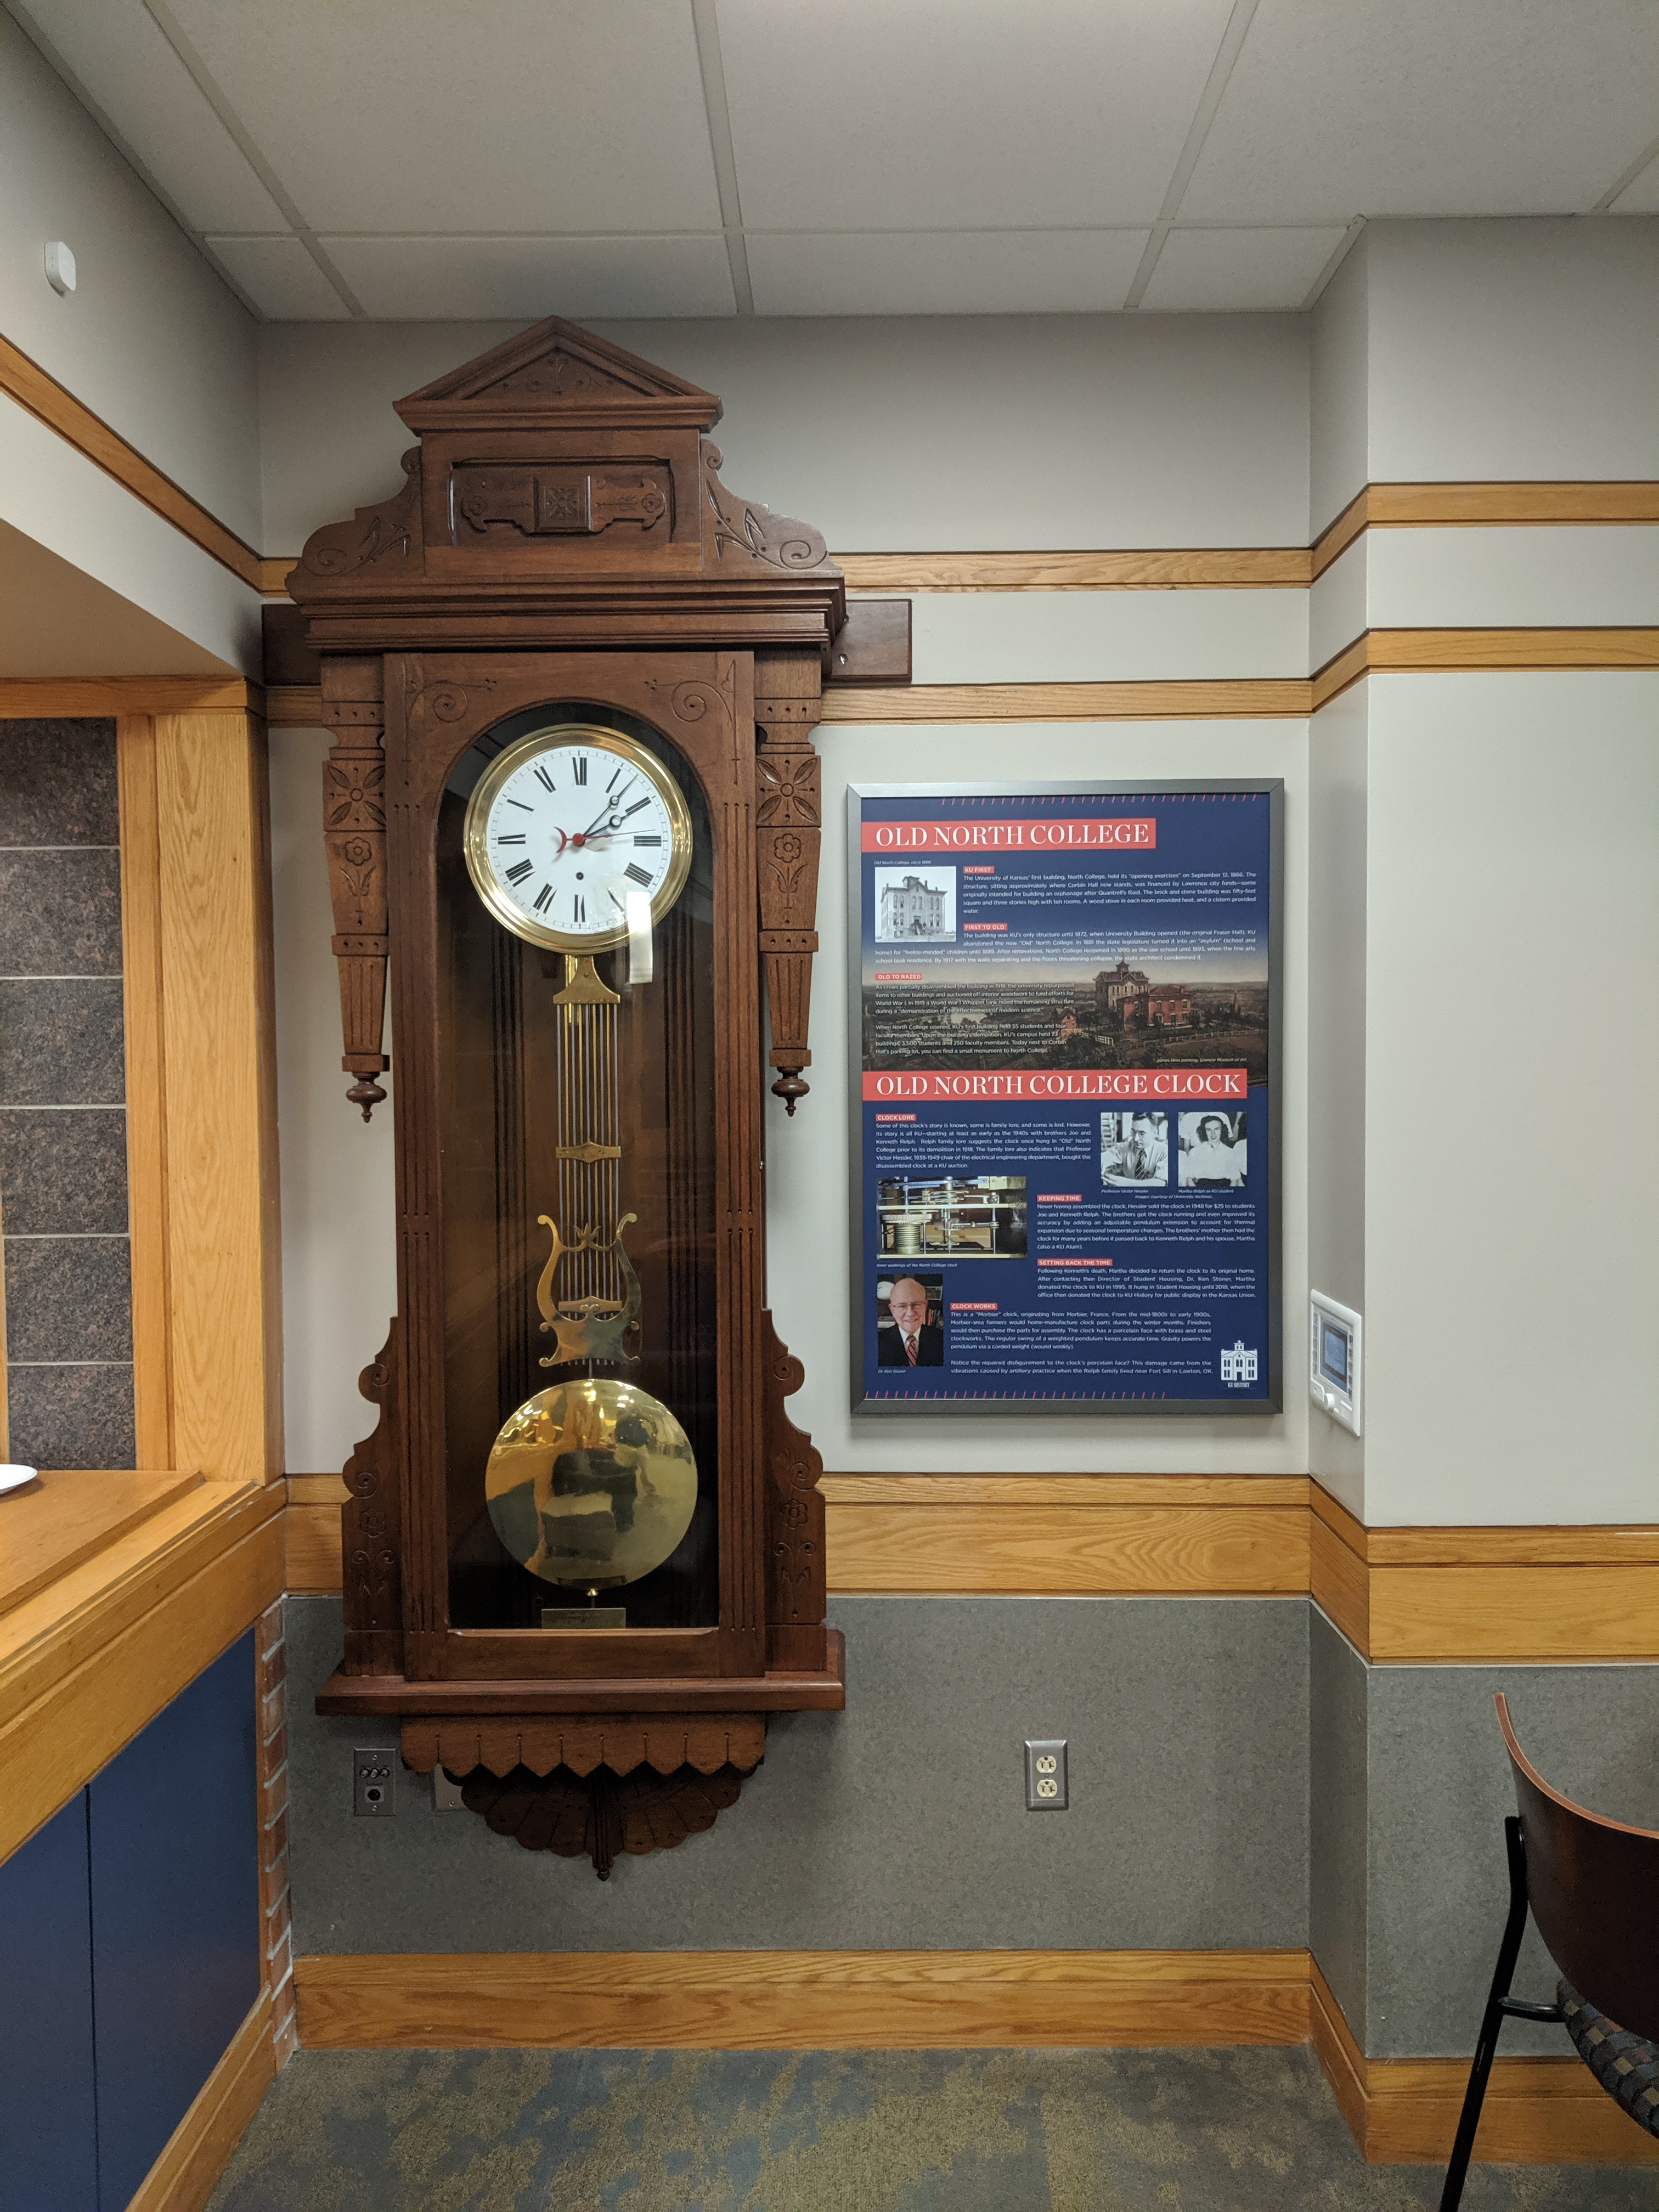 Old North College Clock and graphic panel